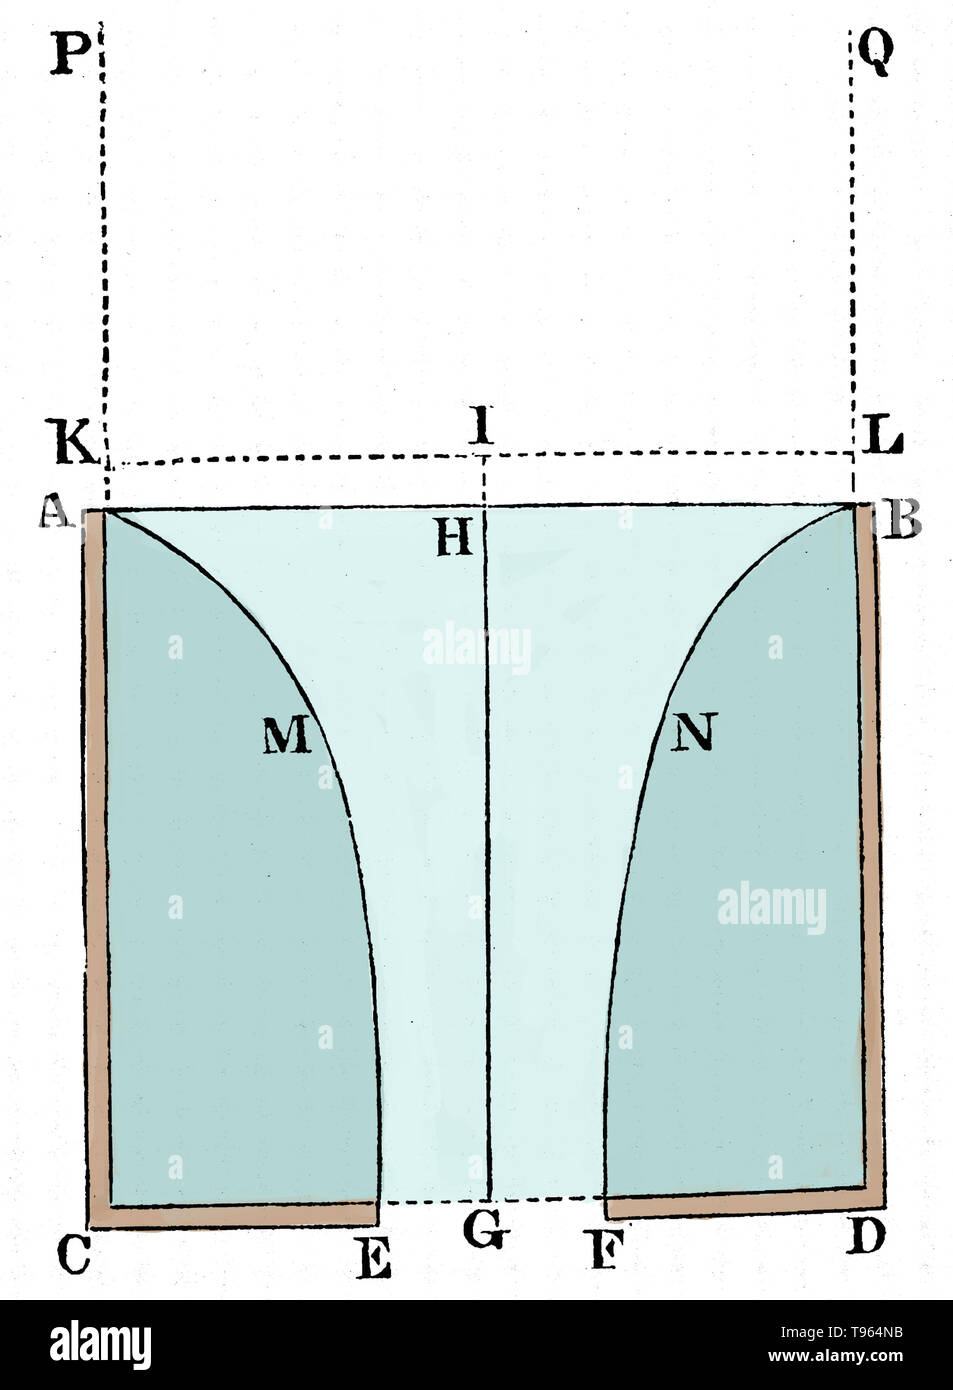 hight resolution of a diagram to define the motion of water running out of a cylindrical vessel through a